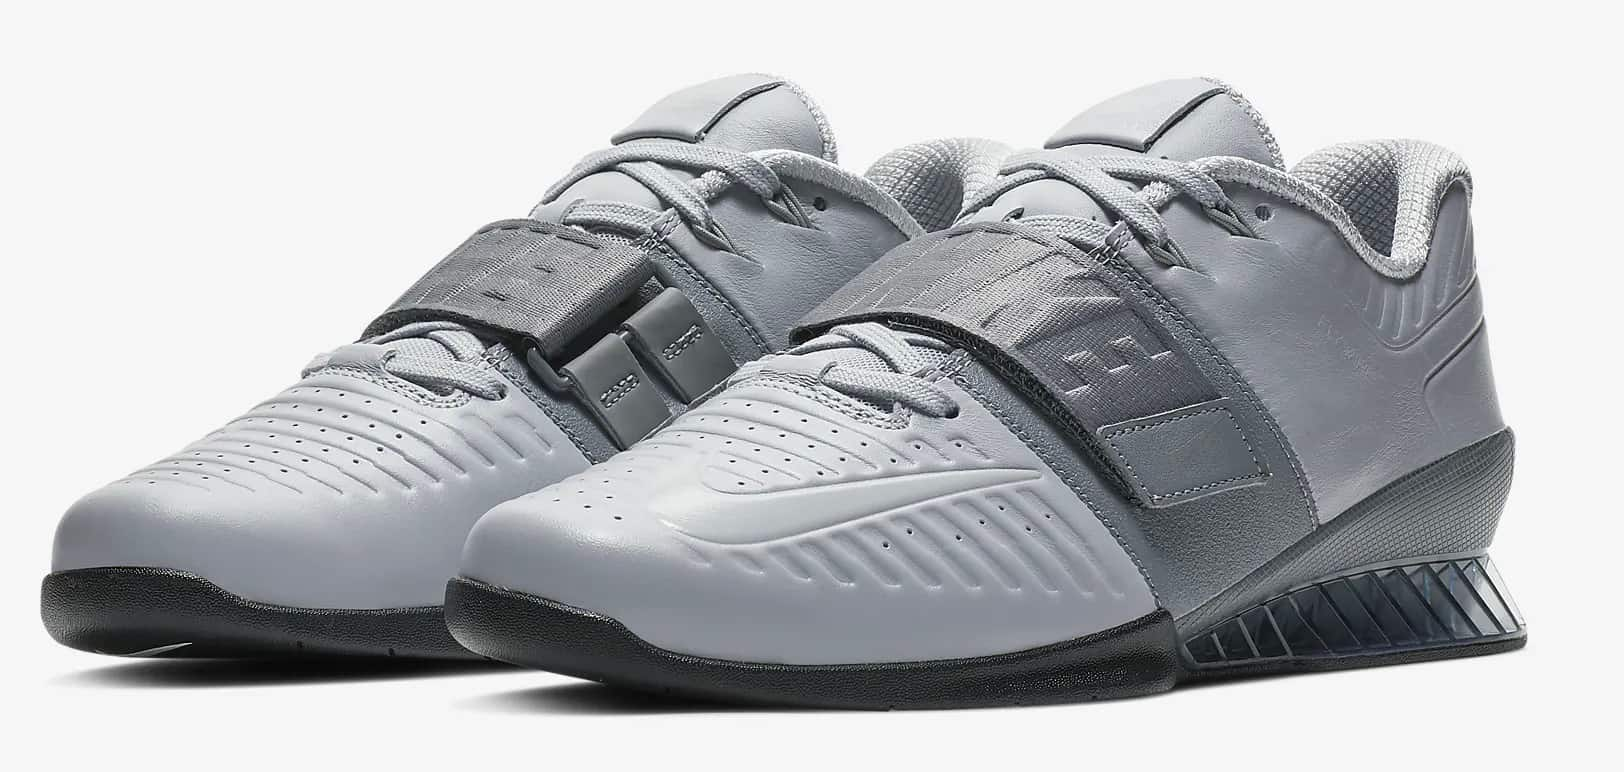 6c00756aff Best Weightlifting Shoes for 2019 (READ BEFORE YOU BUY)